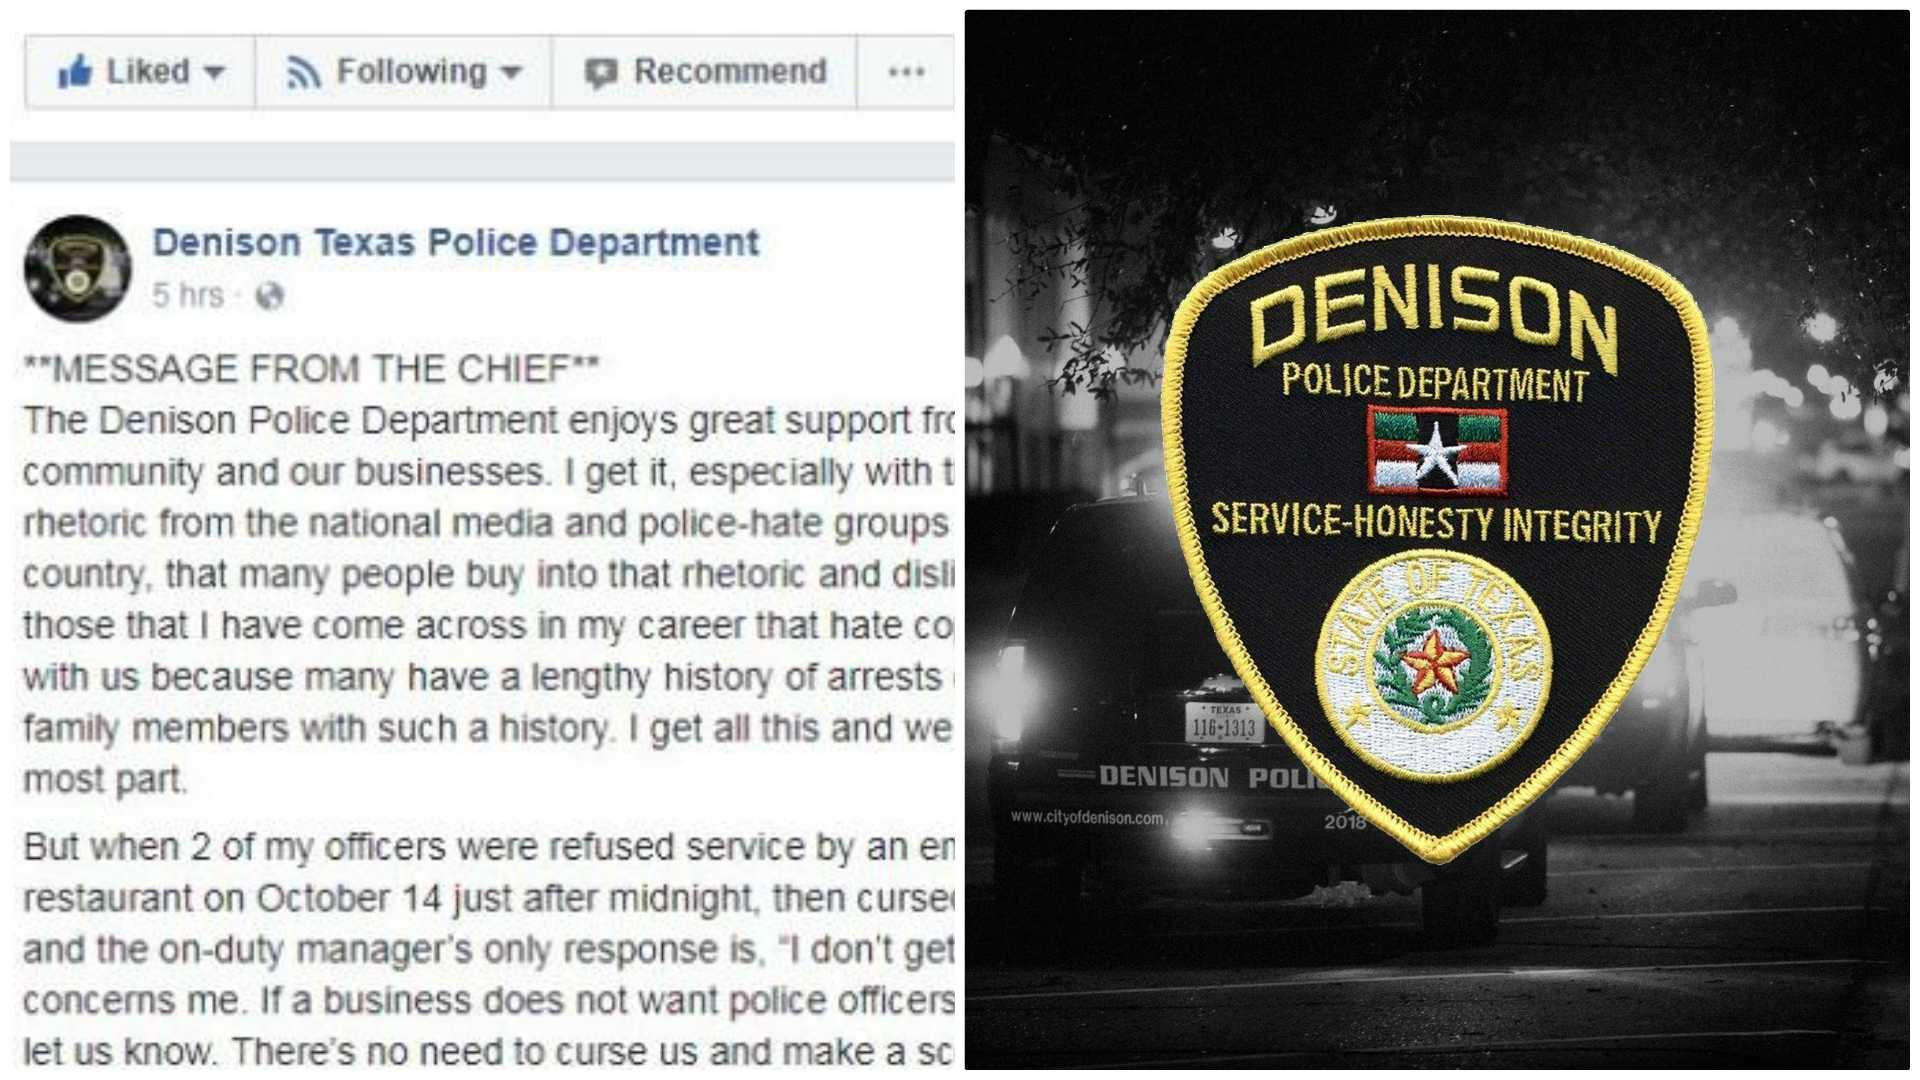 Police chief ficers refused service cursed at restaurant